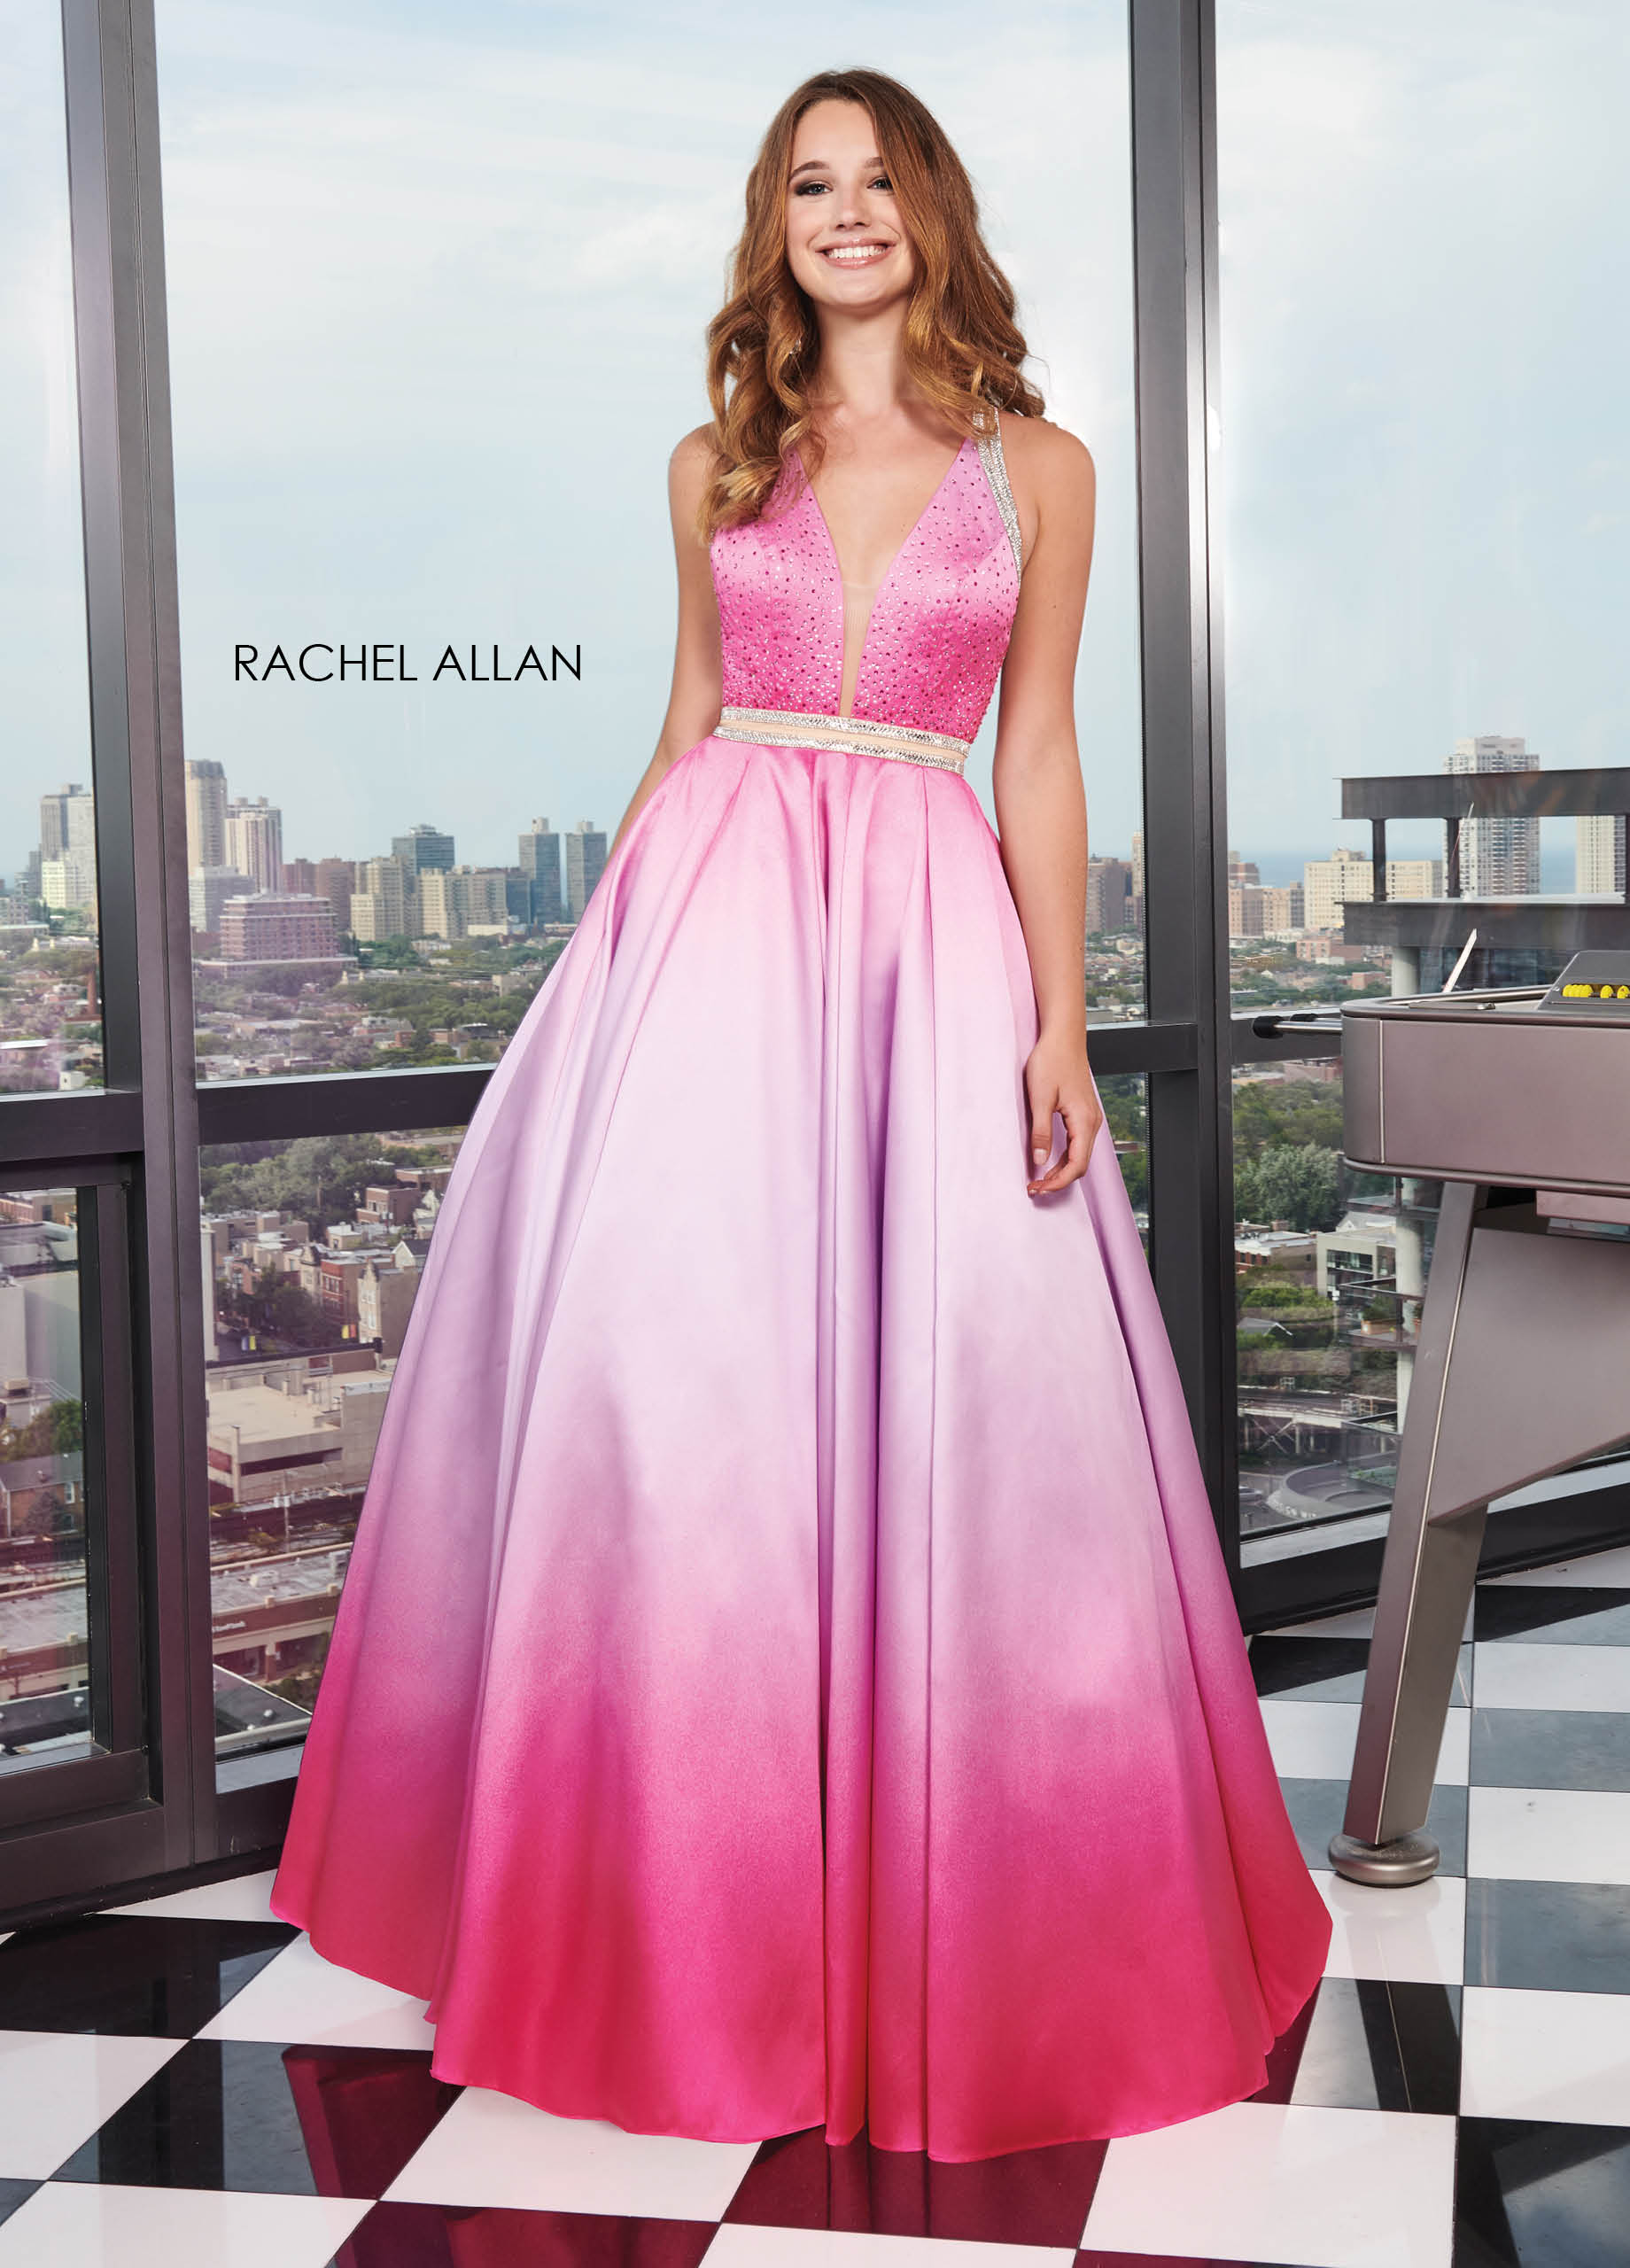 V-Neck Ball Gowns Prom Dresses in Fuchsia Color